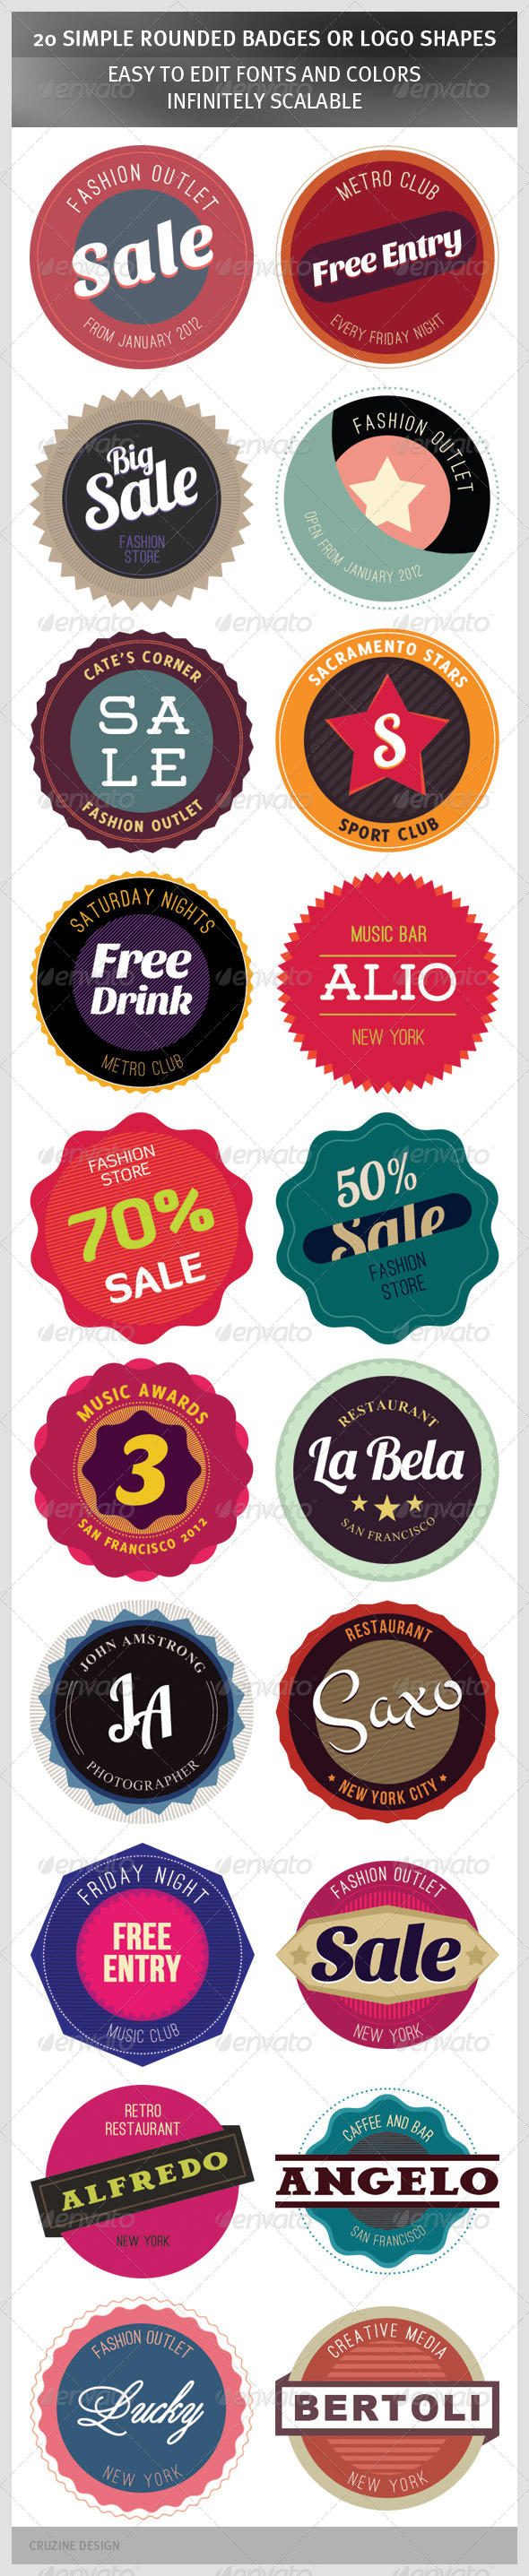 GraphicRiver 20 Simple Rounded Badges or Logo Shapes 1320108